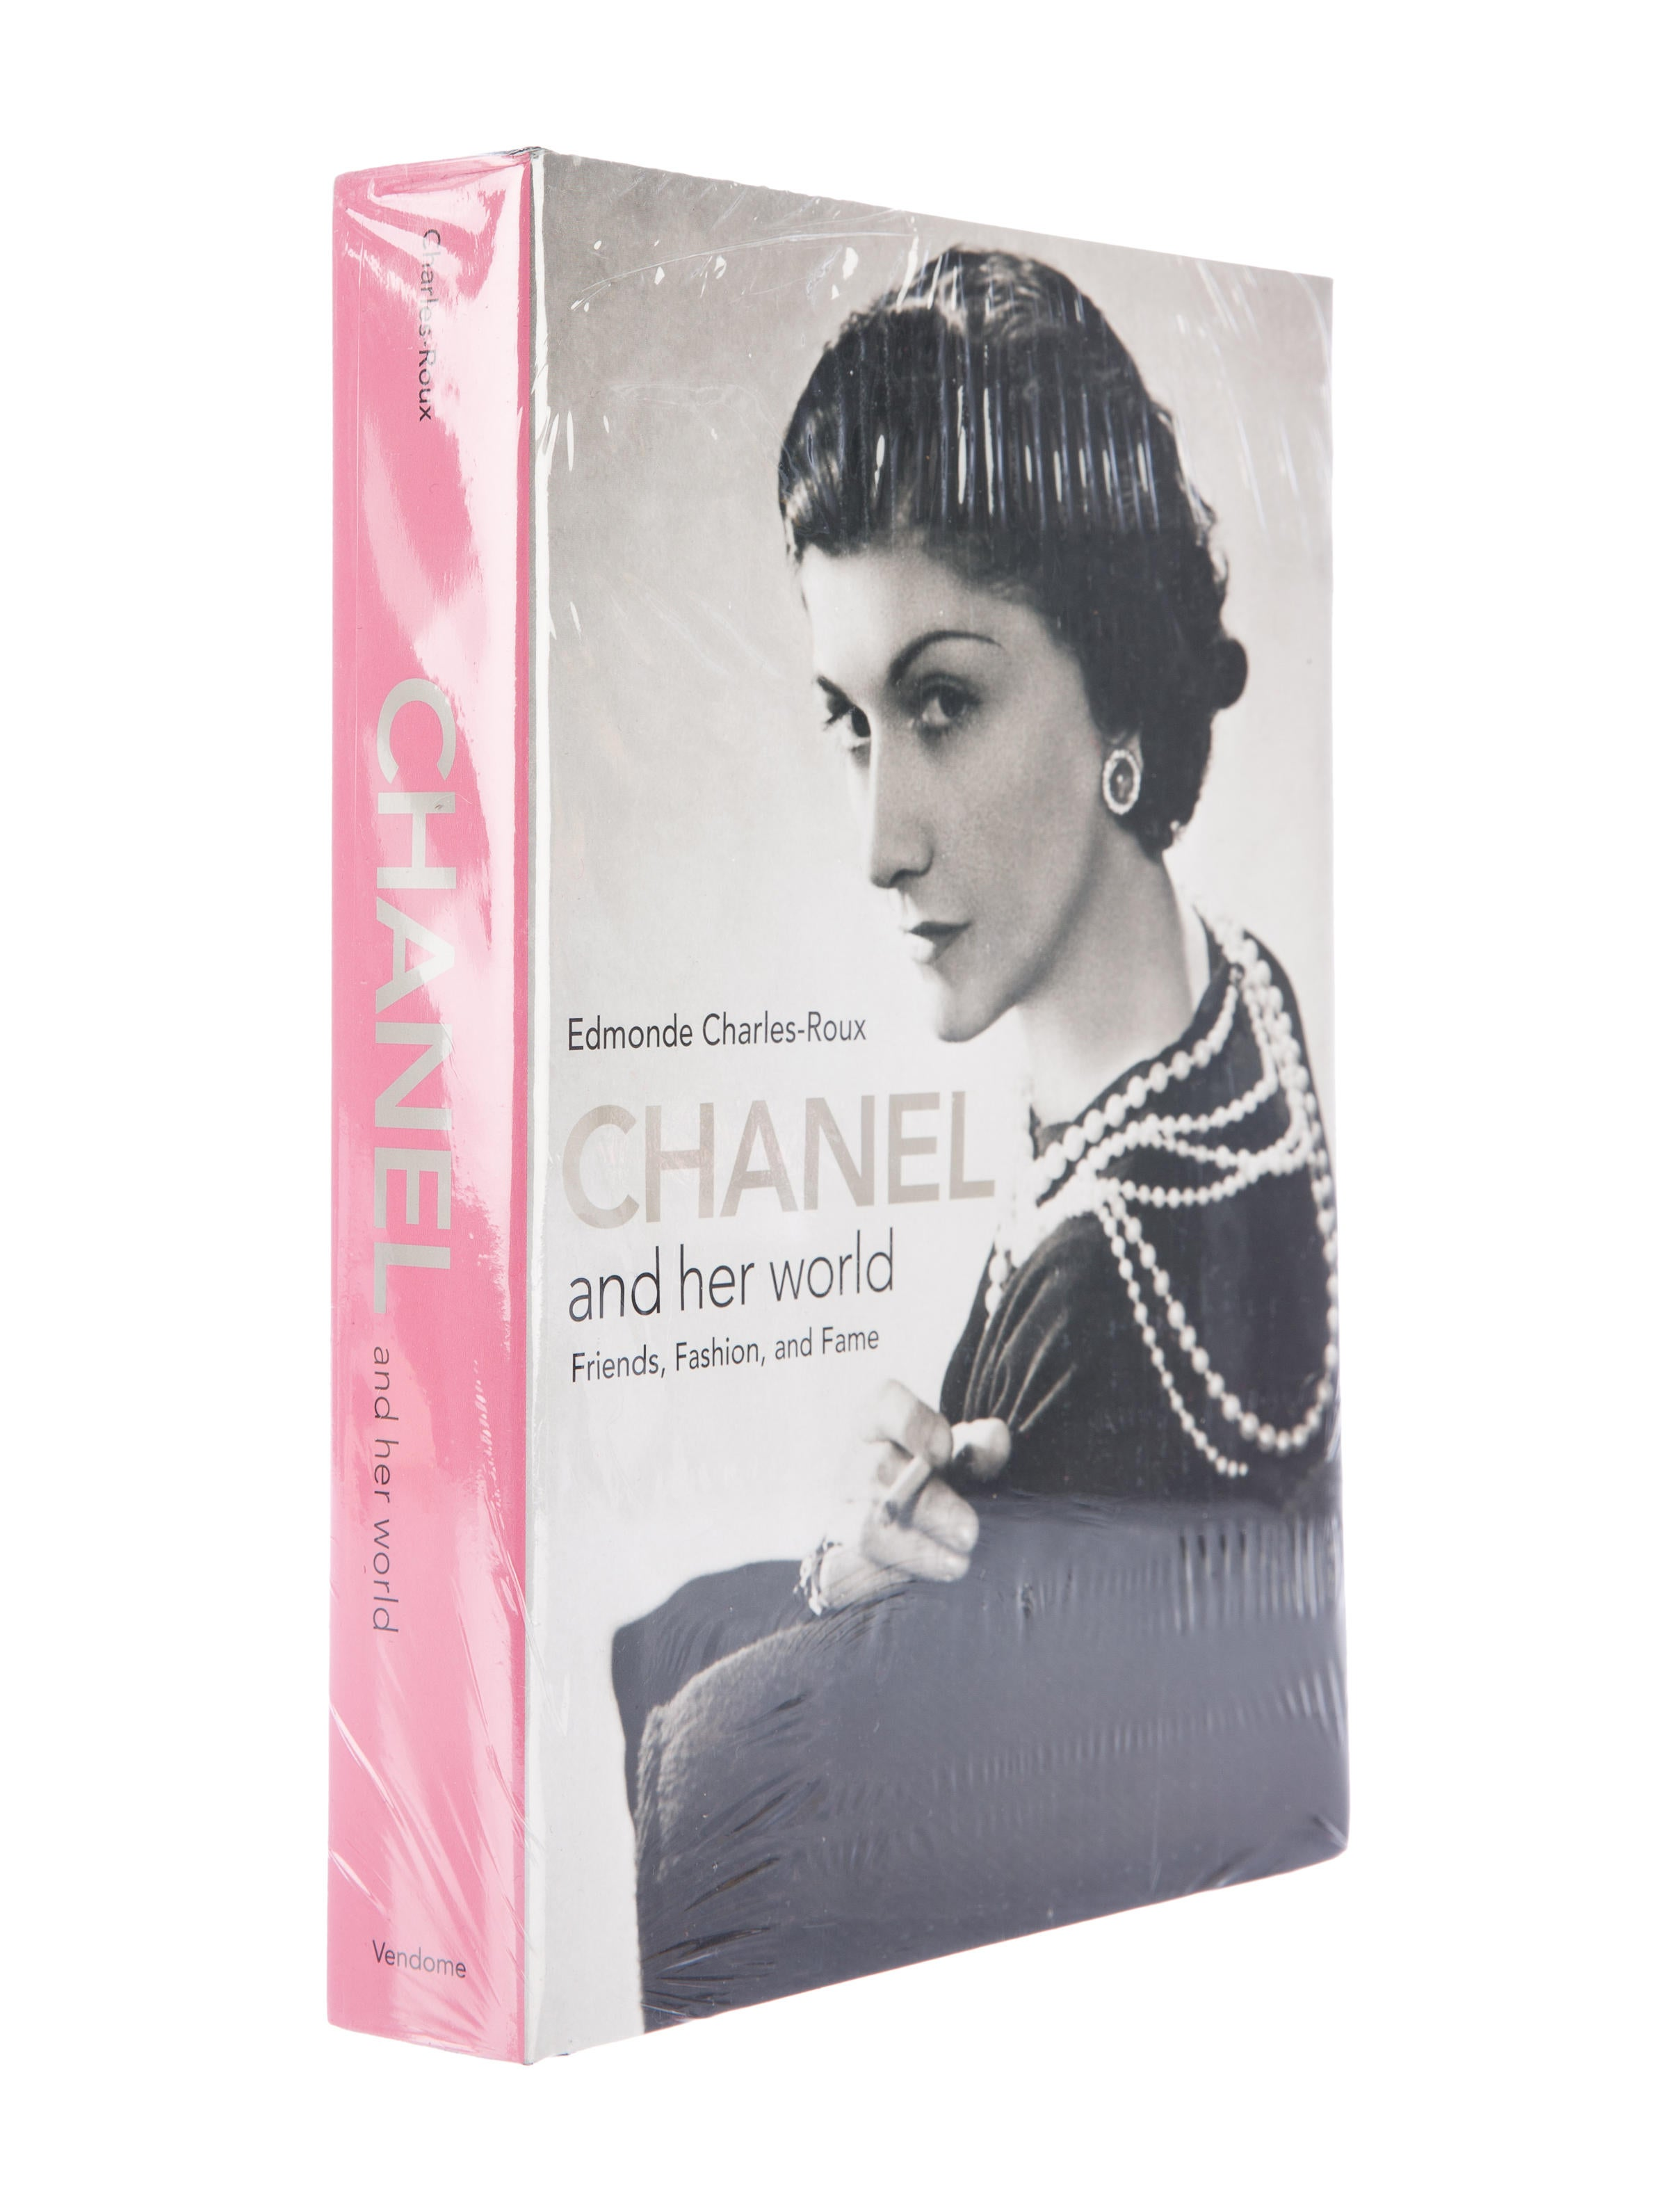 The Fashion Book Hardcover : Chanel and her world hardcover book decor